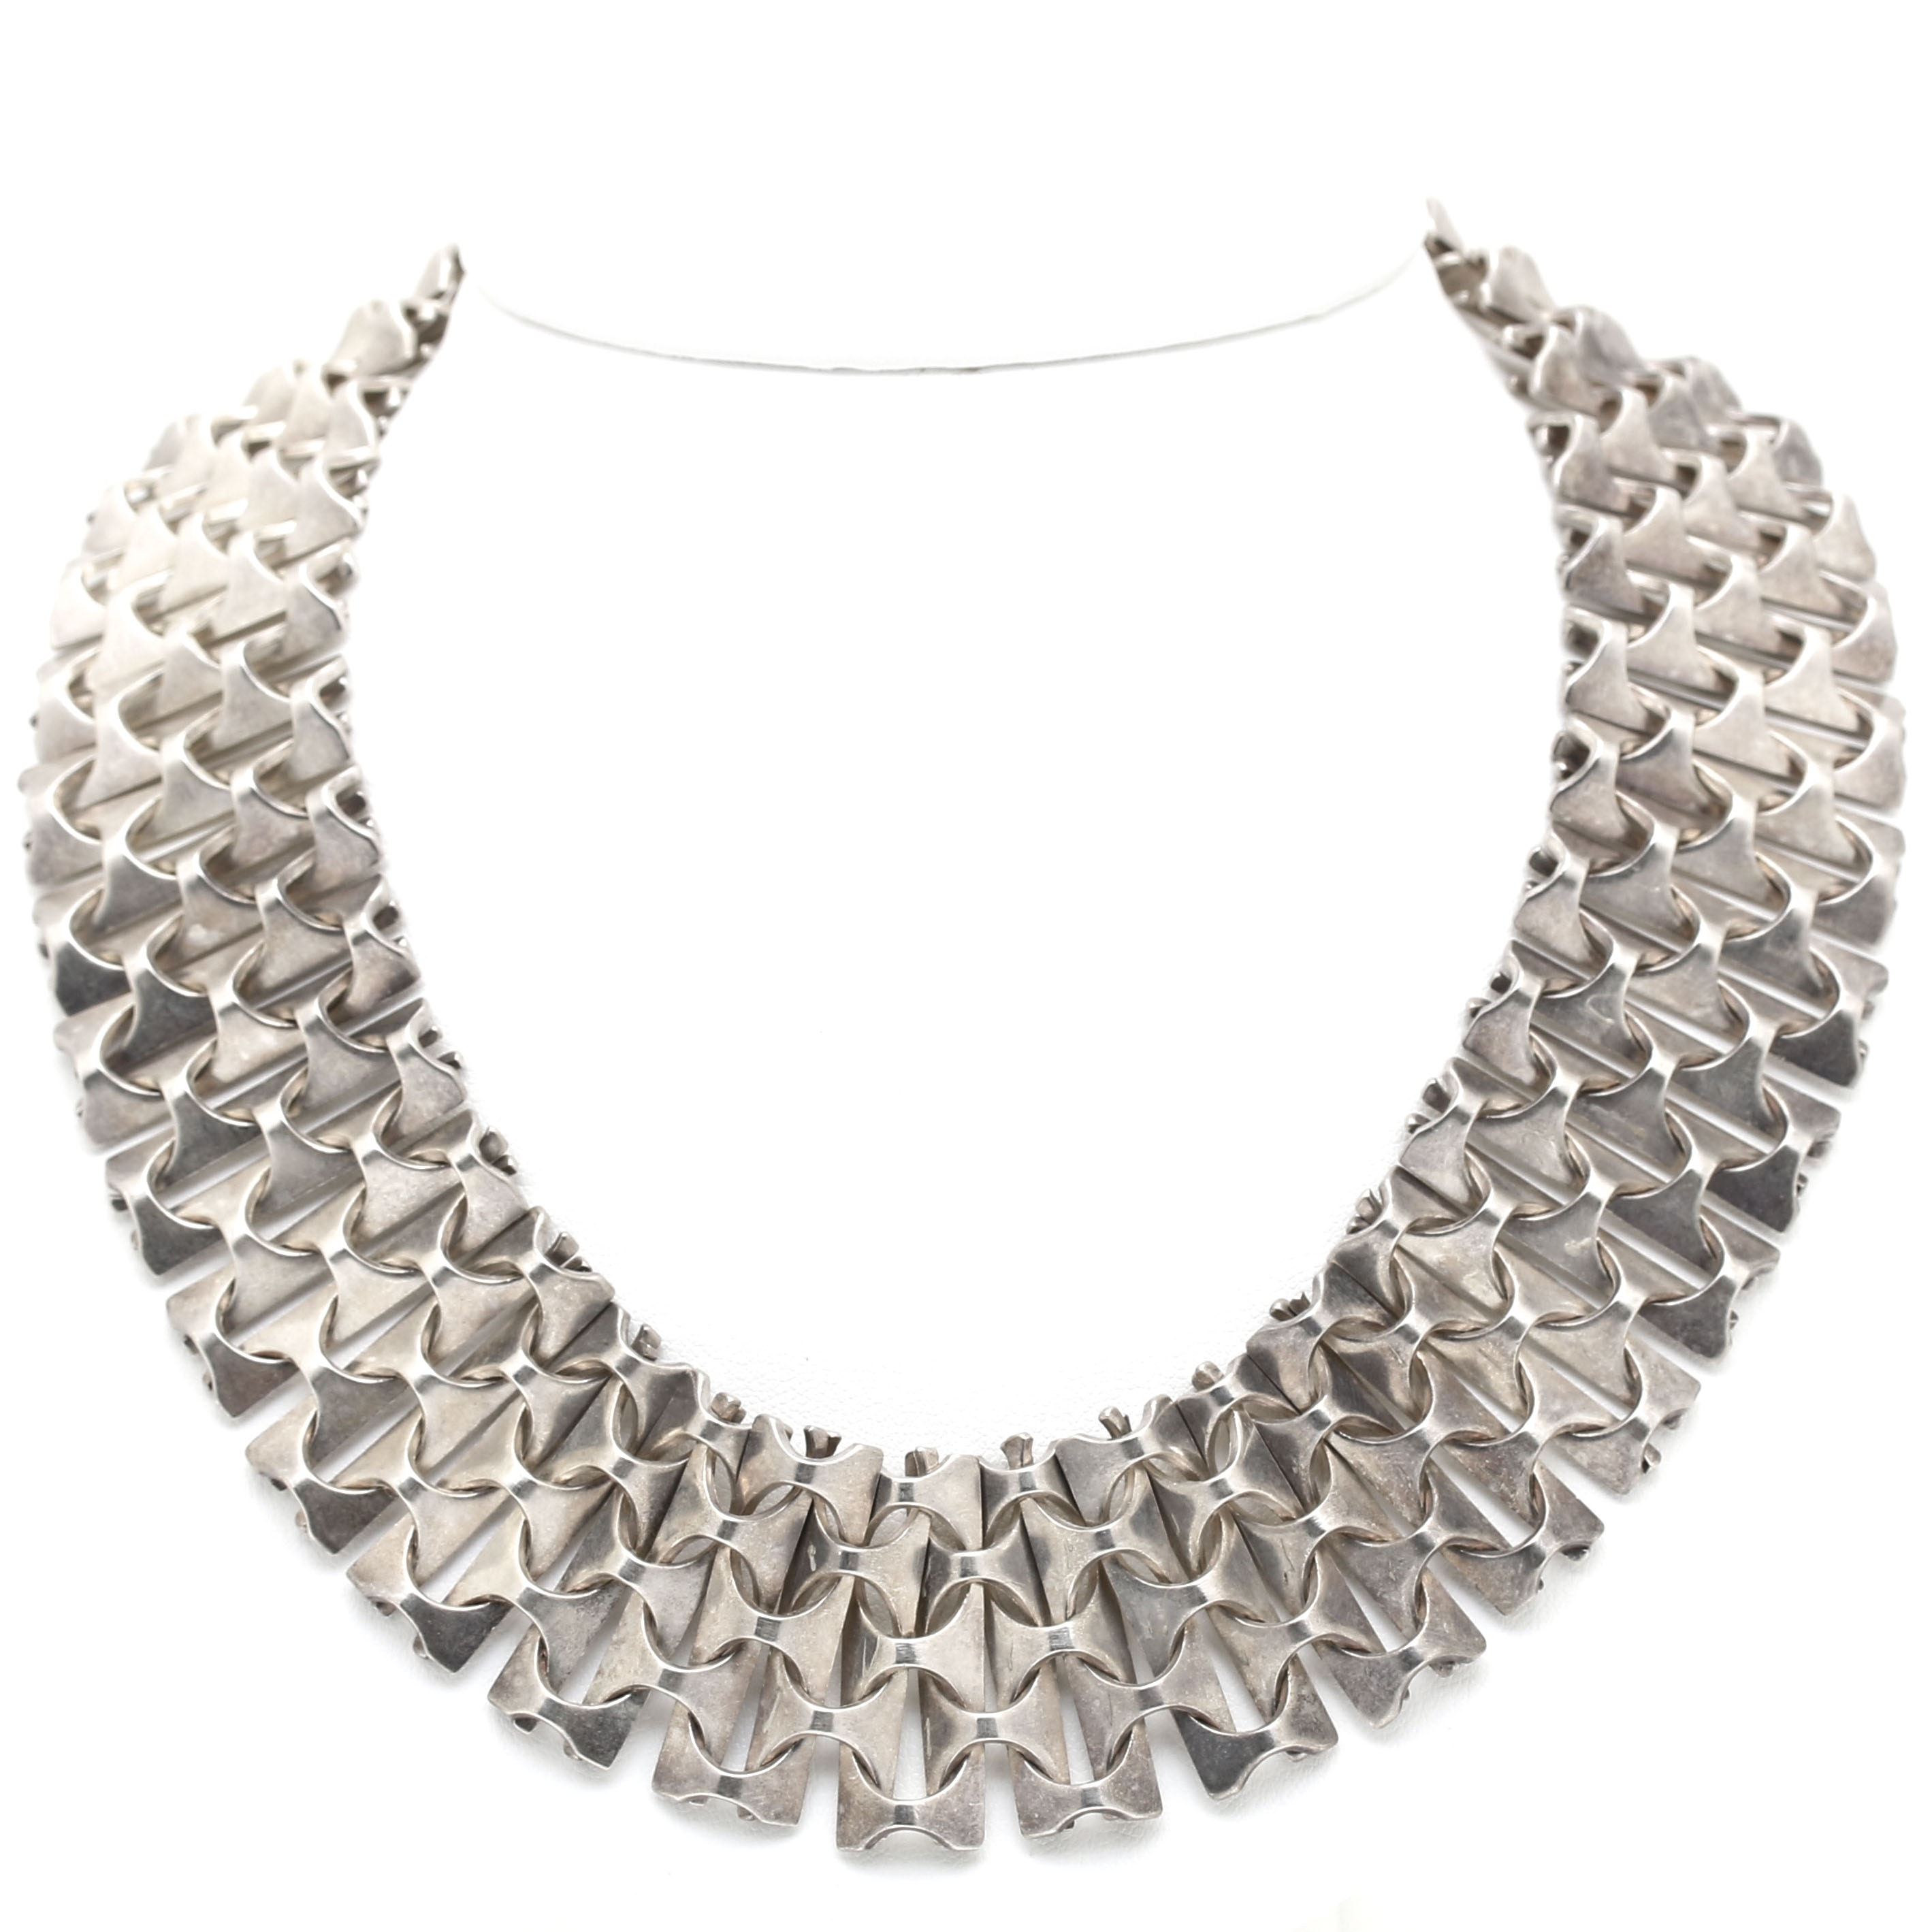 Rey Urban for Age Fausing Modernist Sterling Silver Necklace